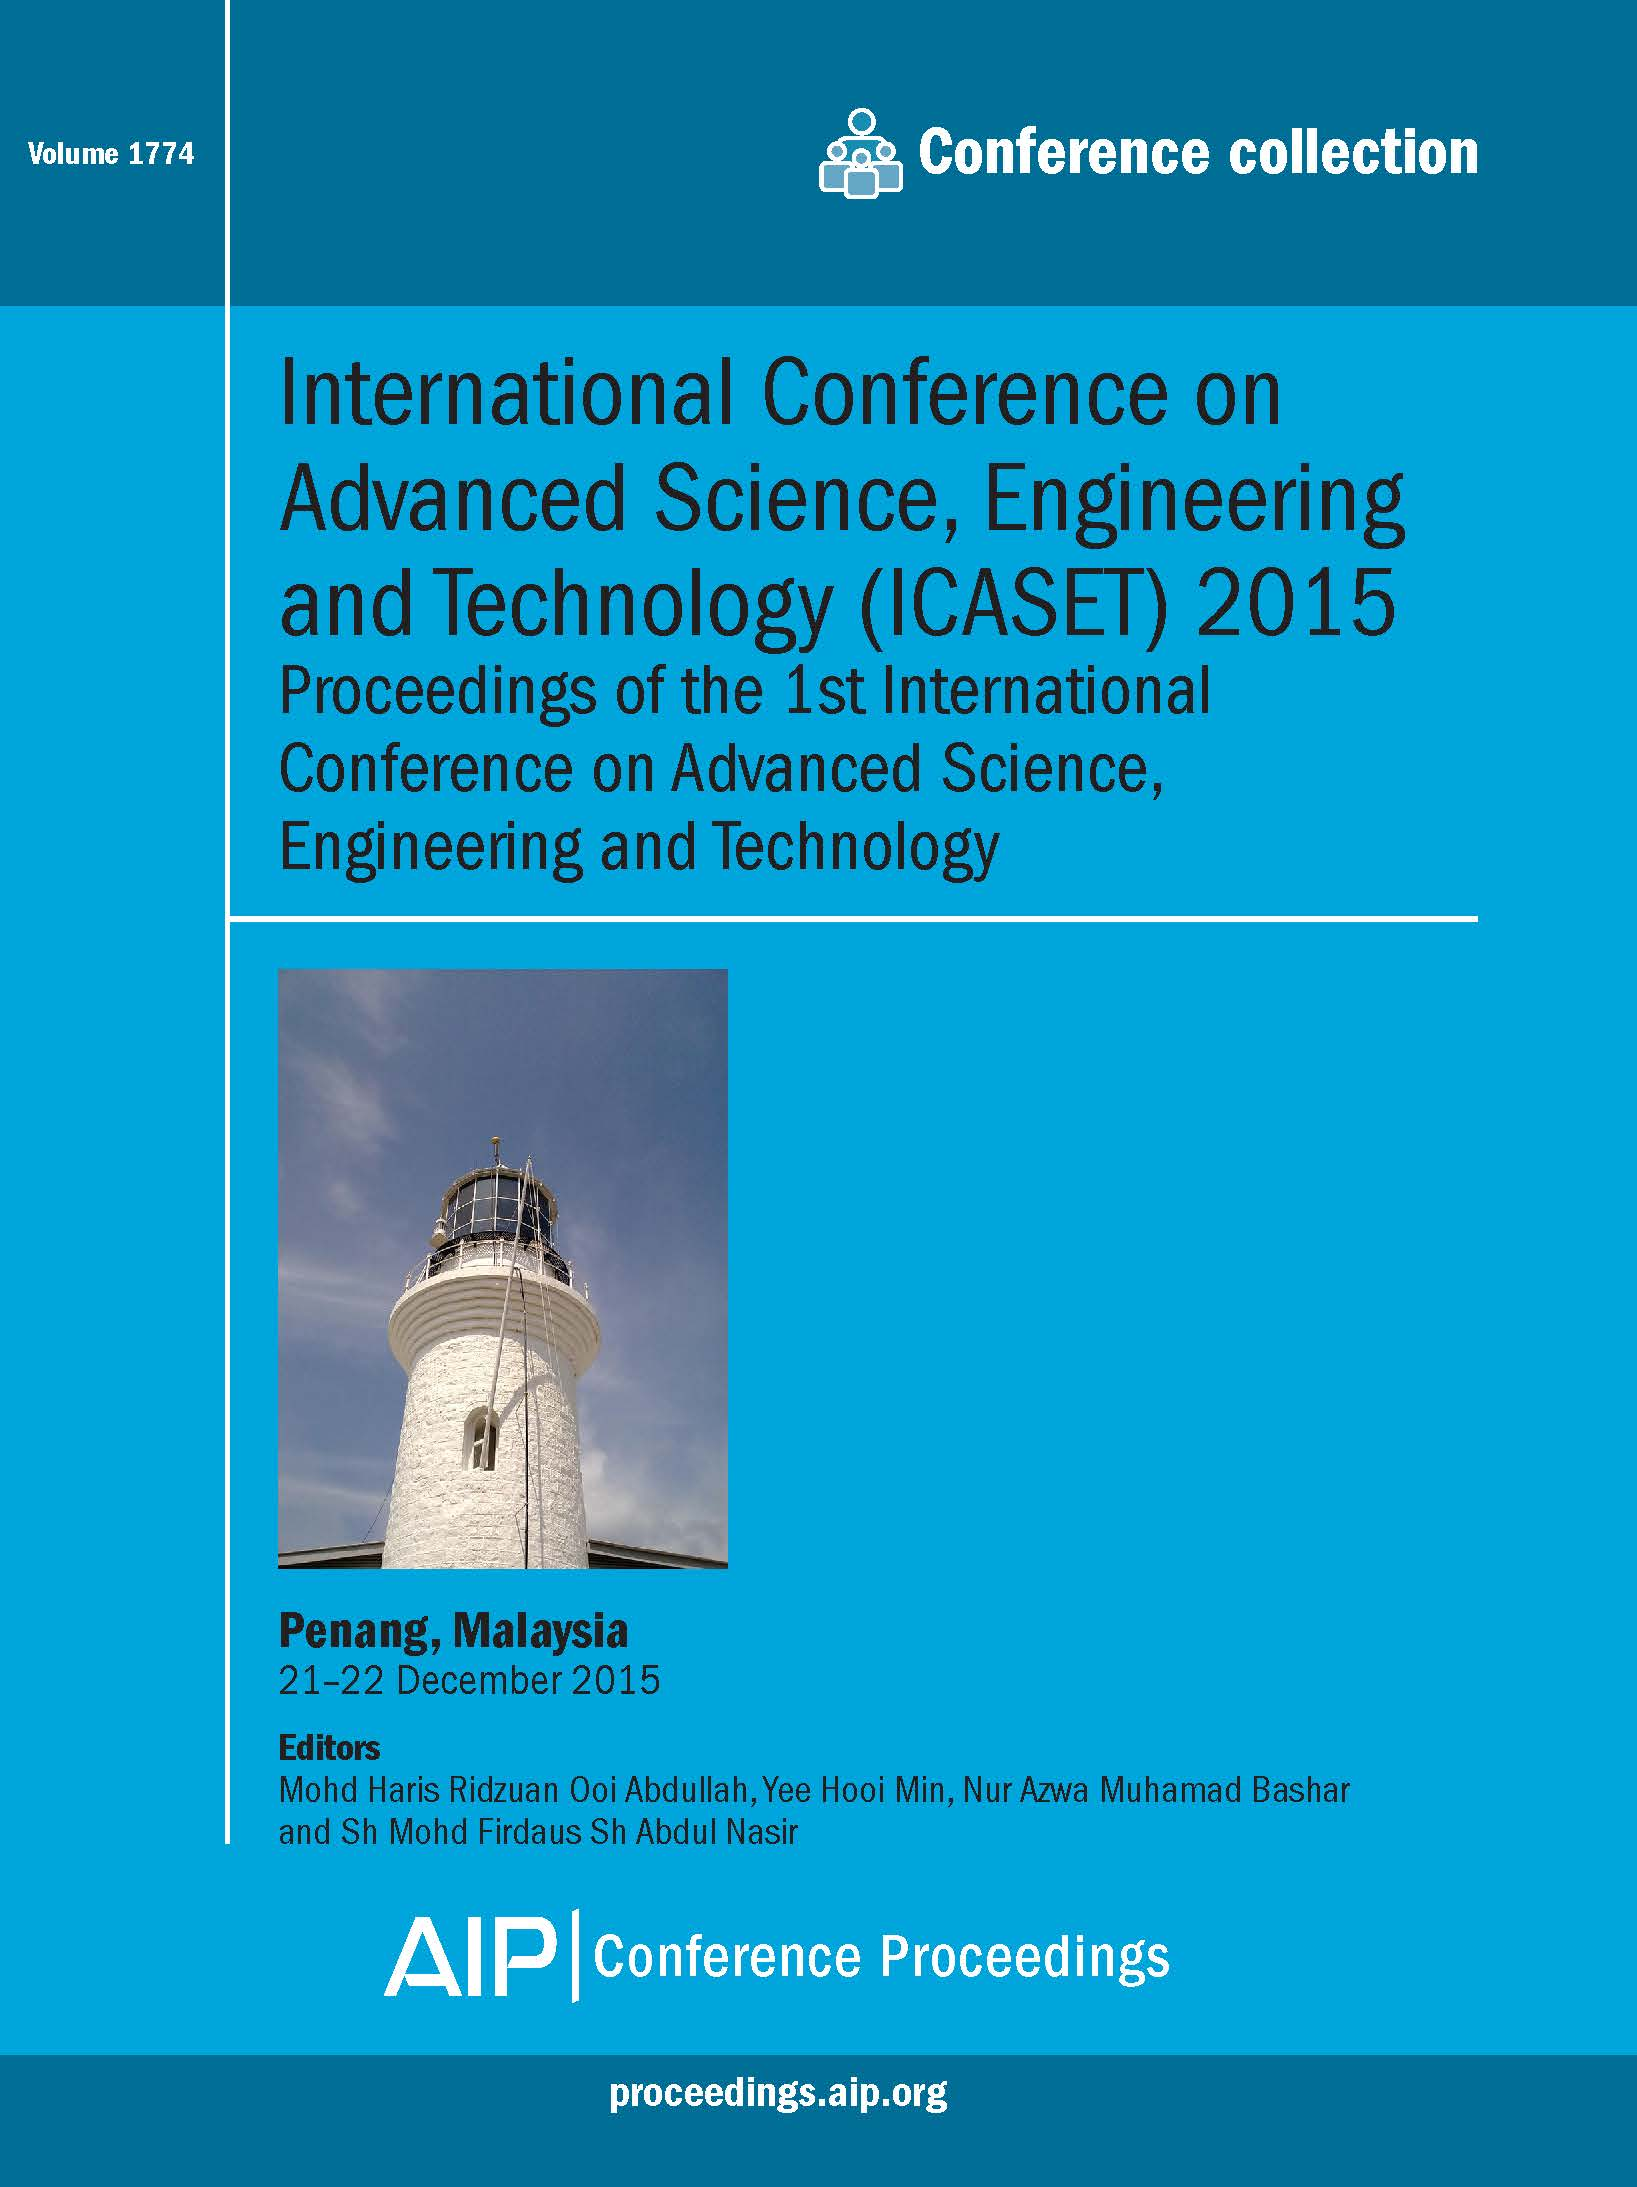 Volume 1774: International Conference on Advanced Science